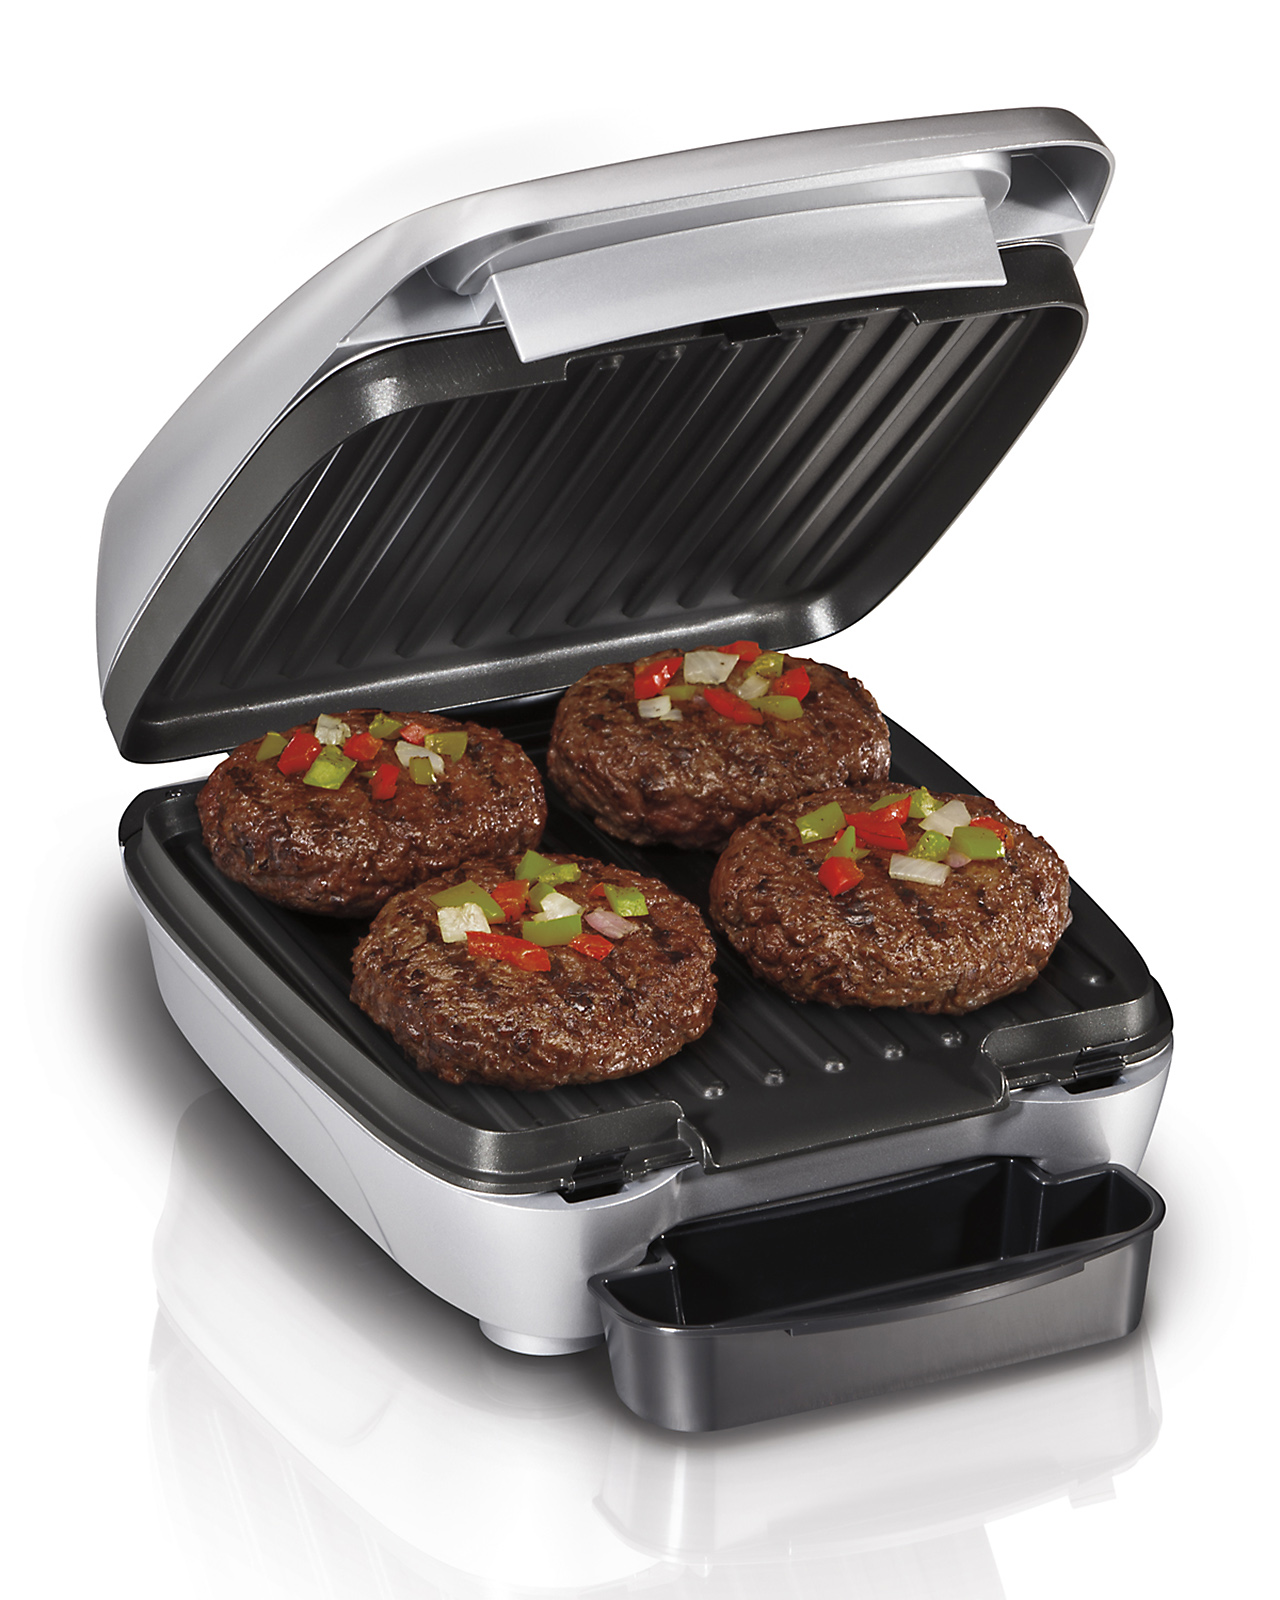 Hamilton Beach Brands . 25359 Countertop Grill With Removable Plates Model